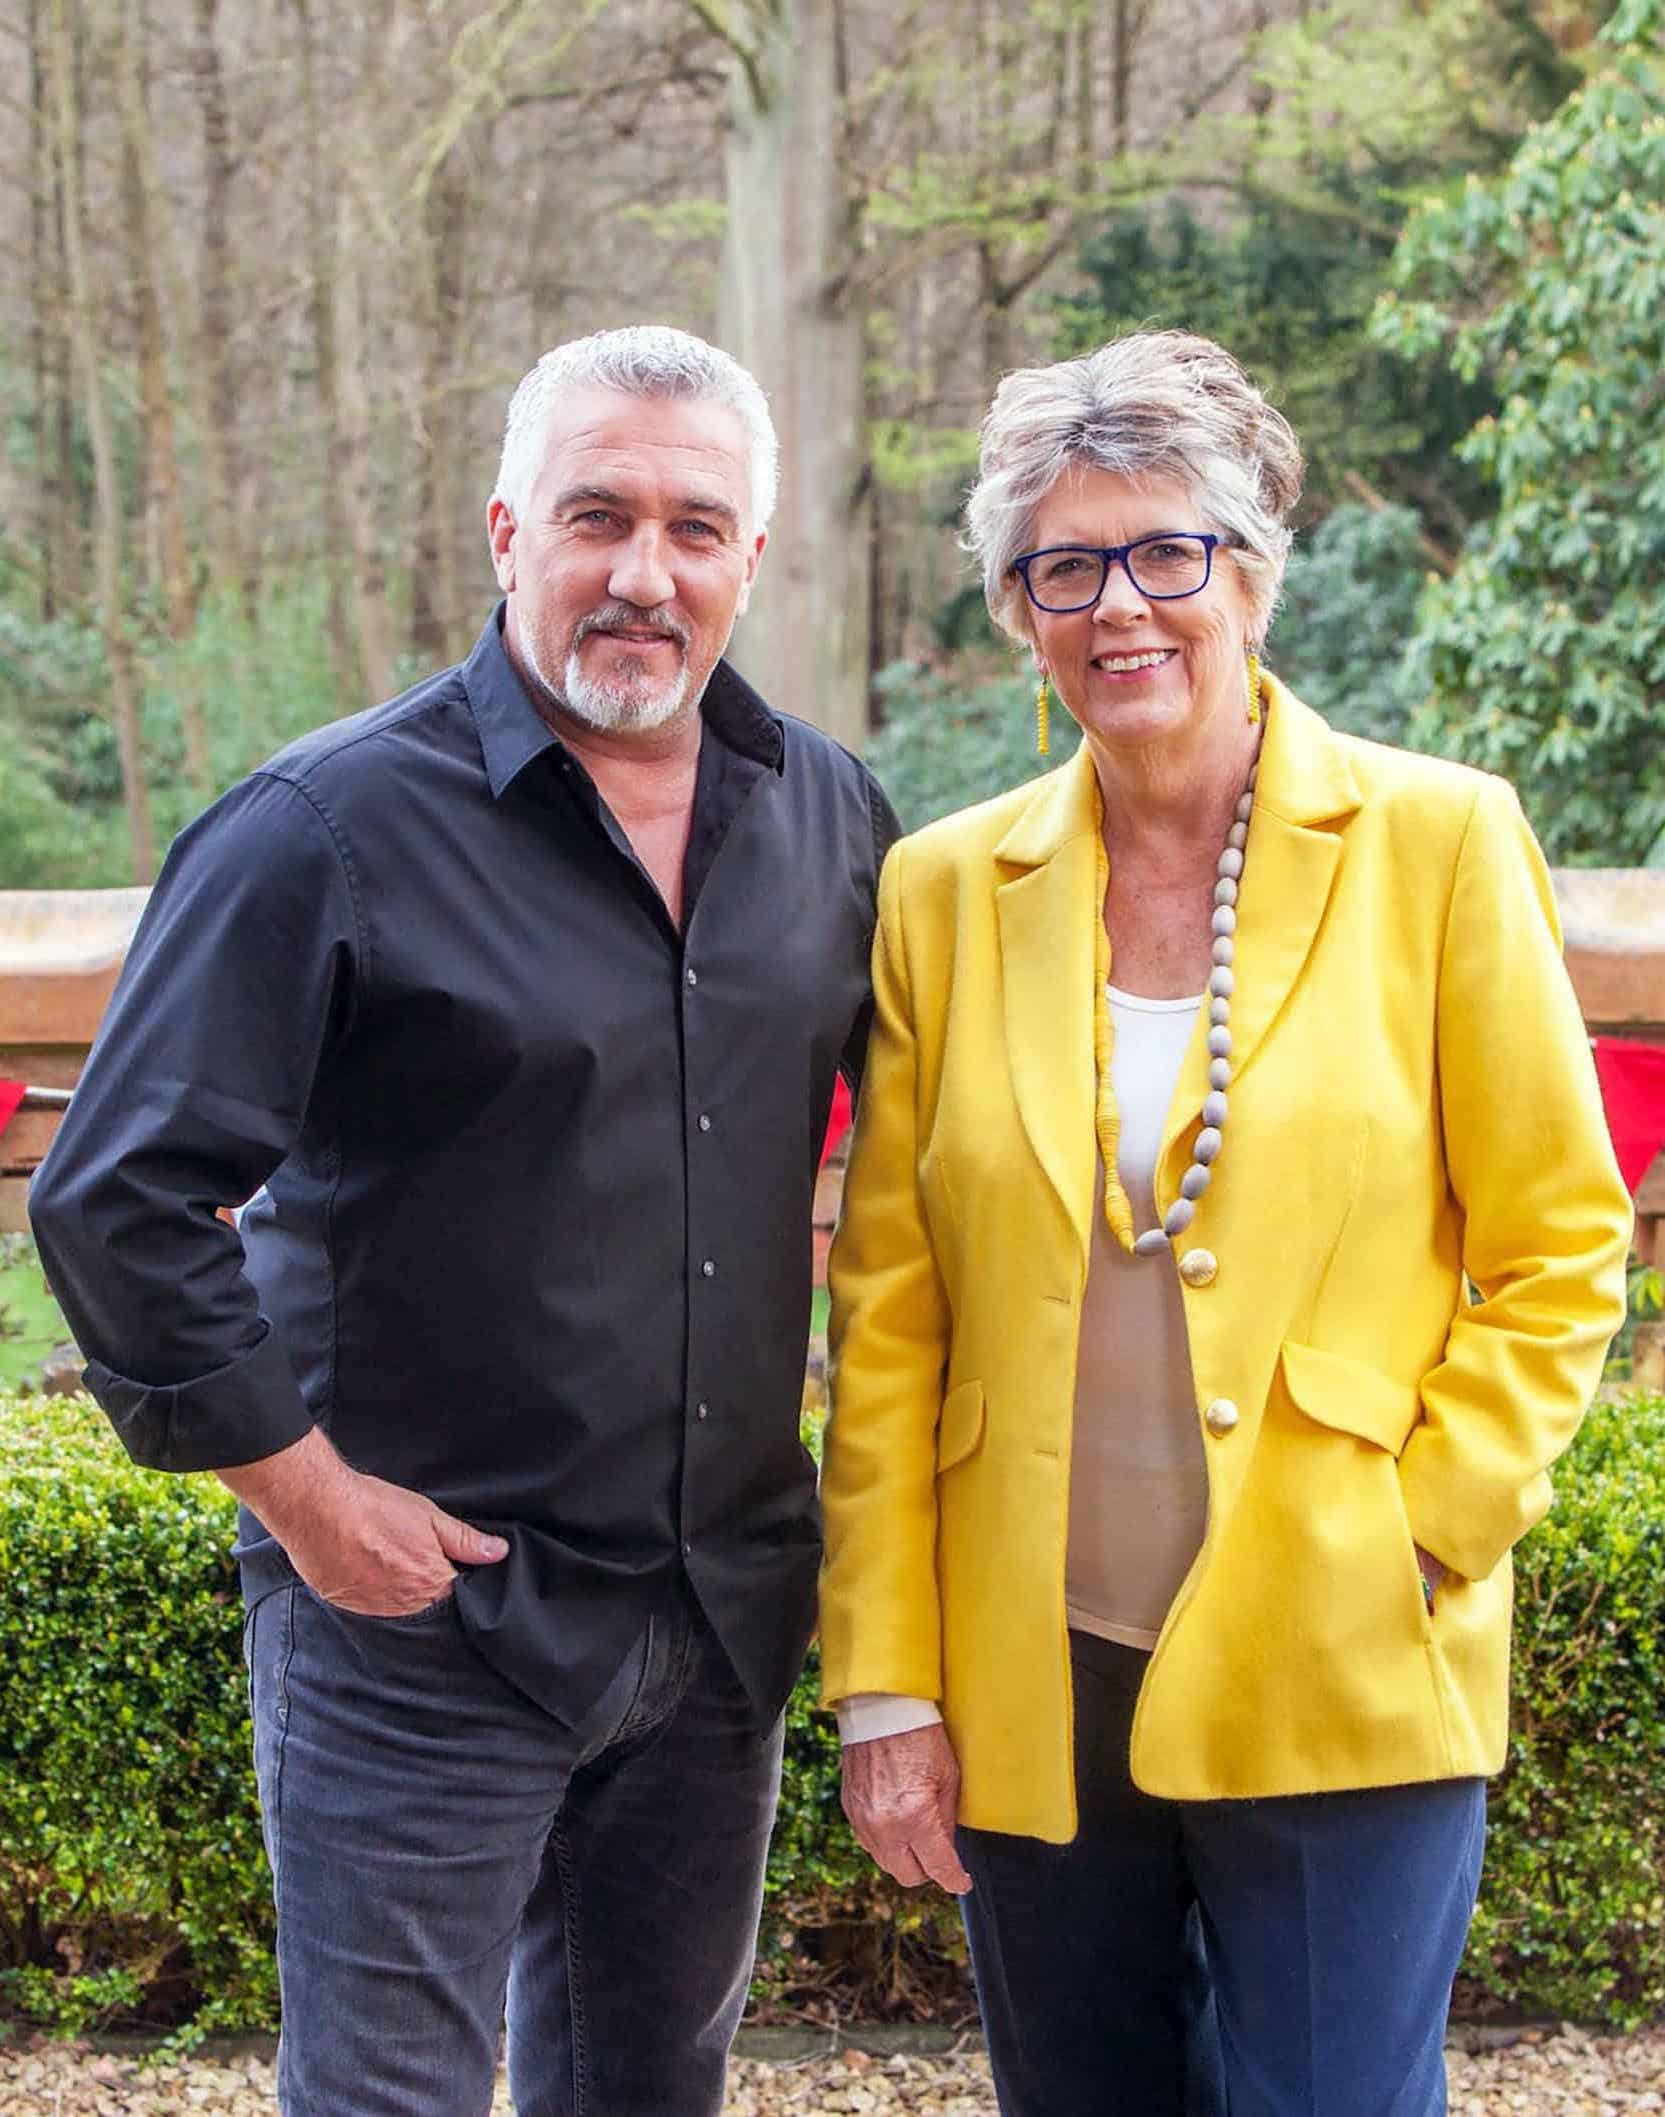 Prue Leith The Great British Bake Off Channel 4 26 Things You Didn't Know About Bake Off's Prue Leith